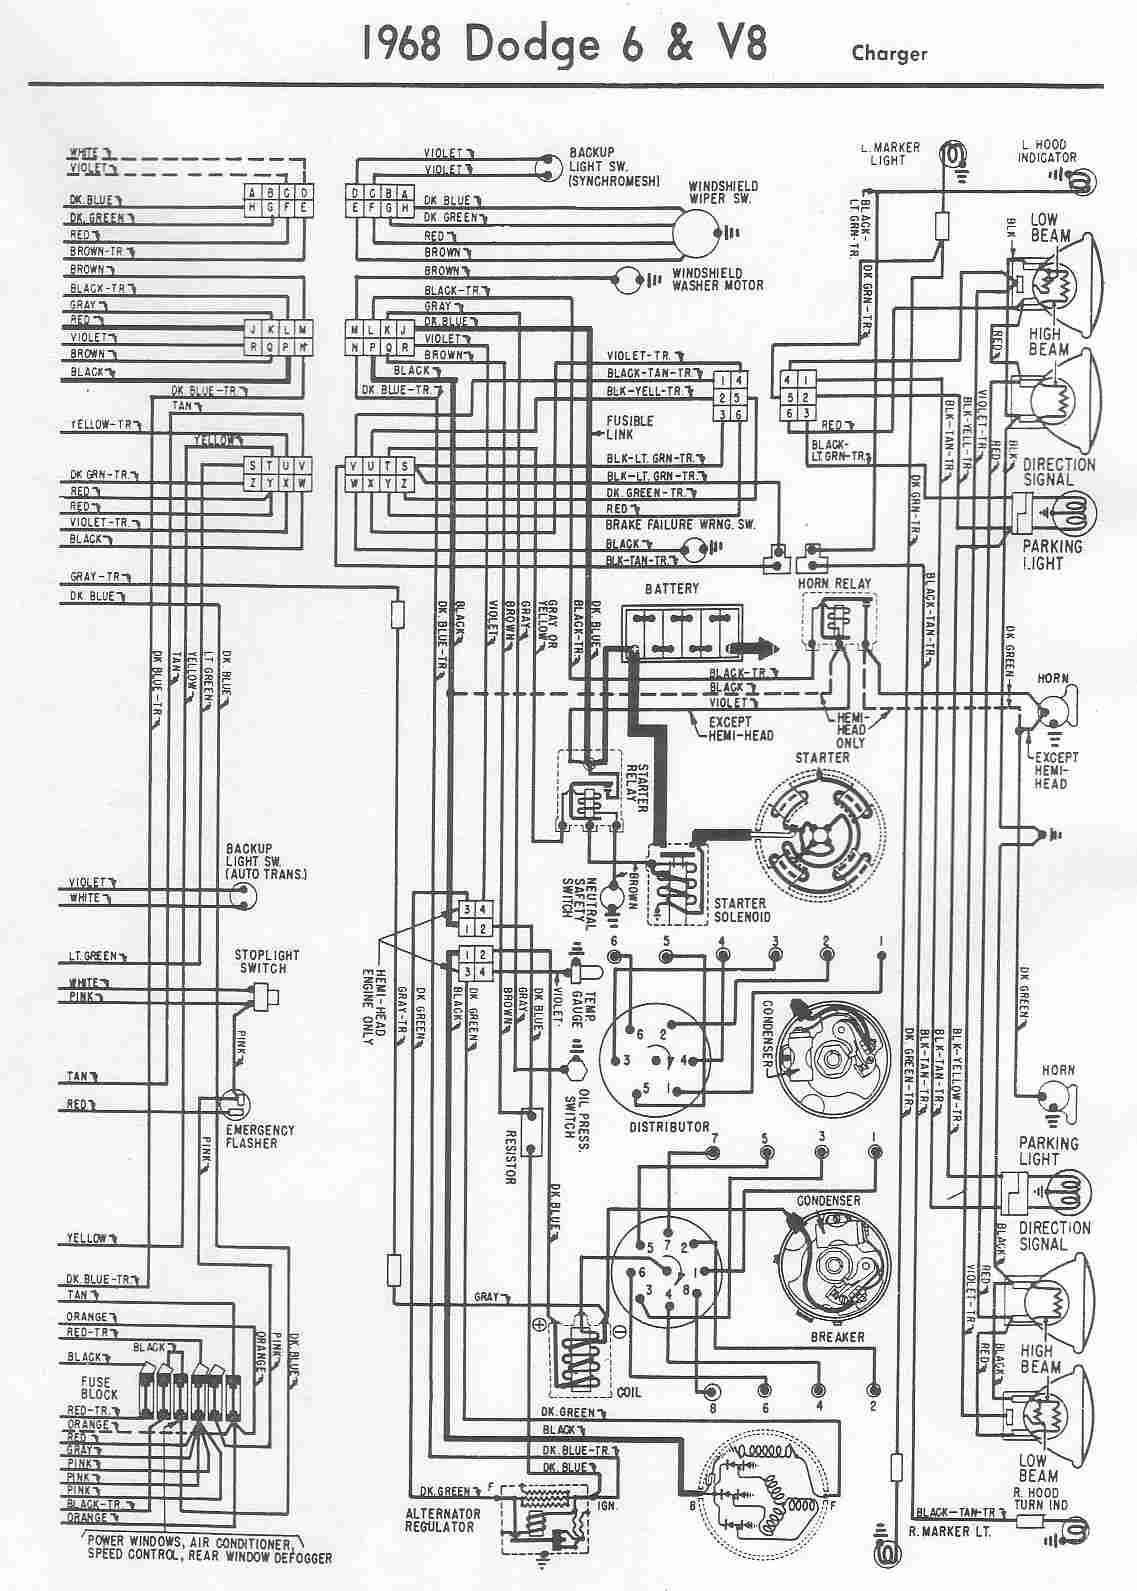 1972 Dodge Dart Ignition Wiring Diagram Free For You 1966 Mopar Source Rh 13 1 2 Logistra Net De Challenger Demon